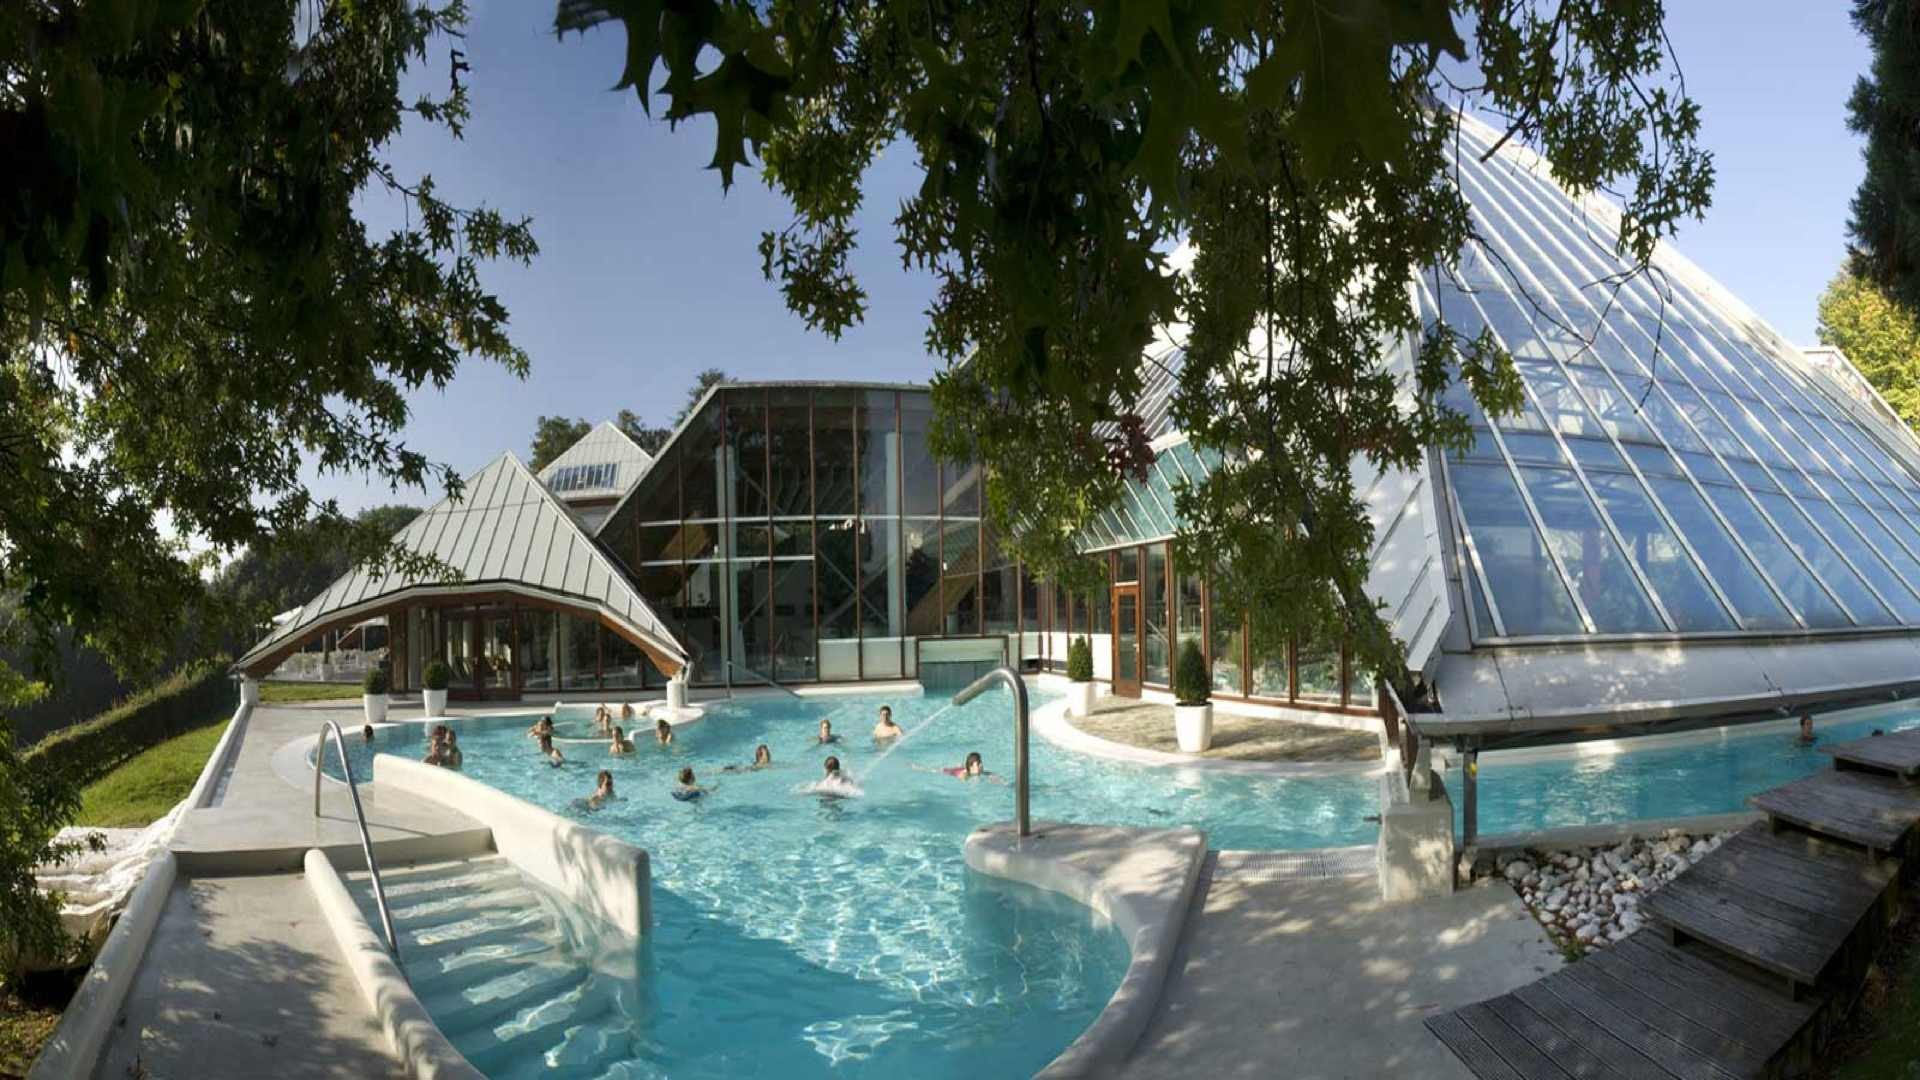 Supertrips - Thermae Wellness Hotel